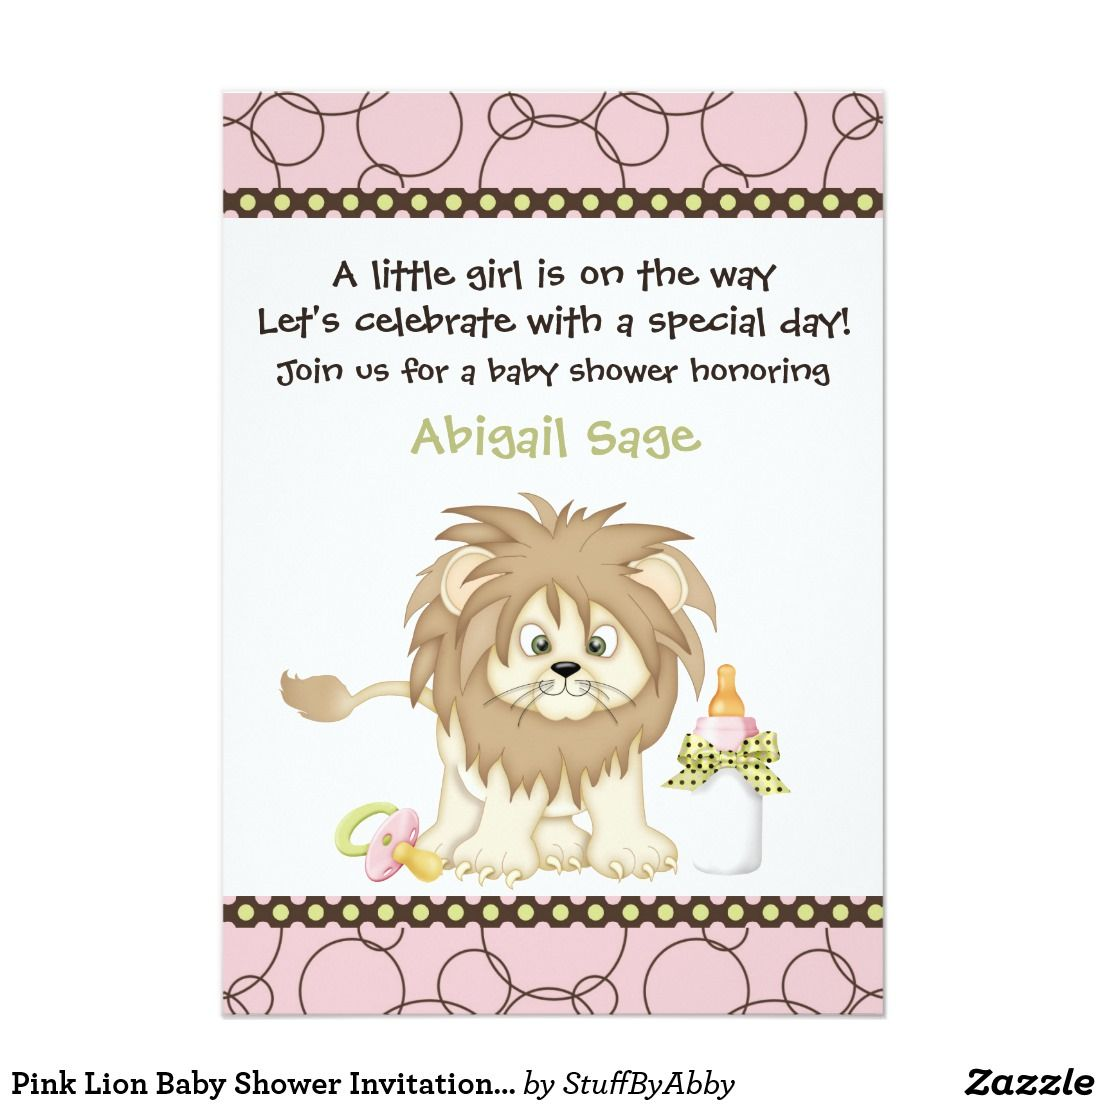 Pink Lion Baby Shower Invitation for Girls | Lion baby shower and ...